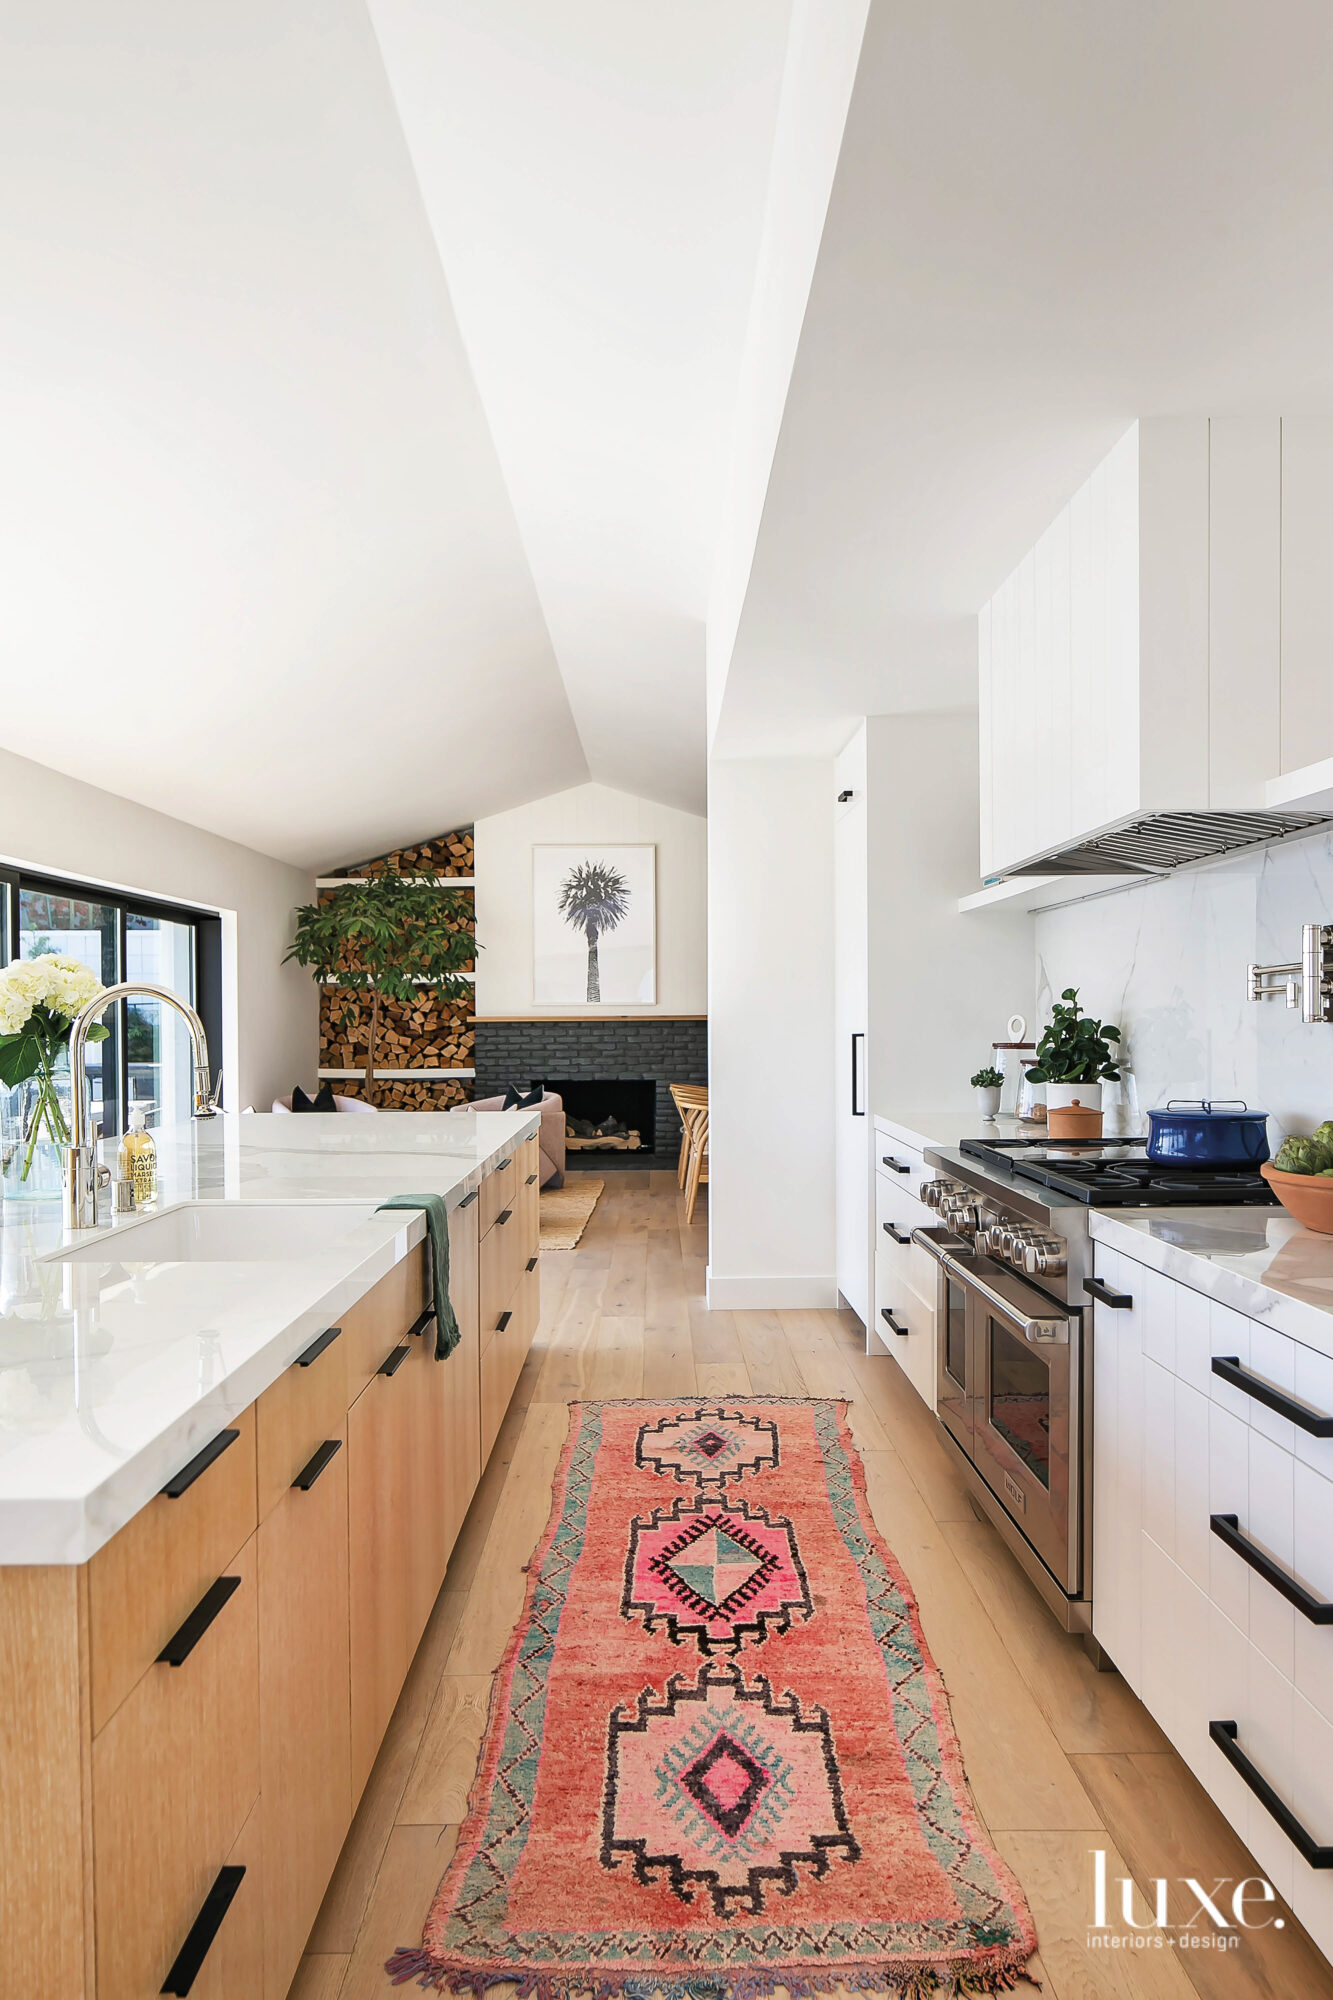 View of kitchen facing a...